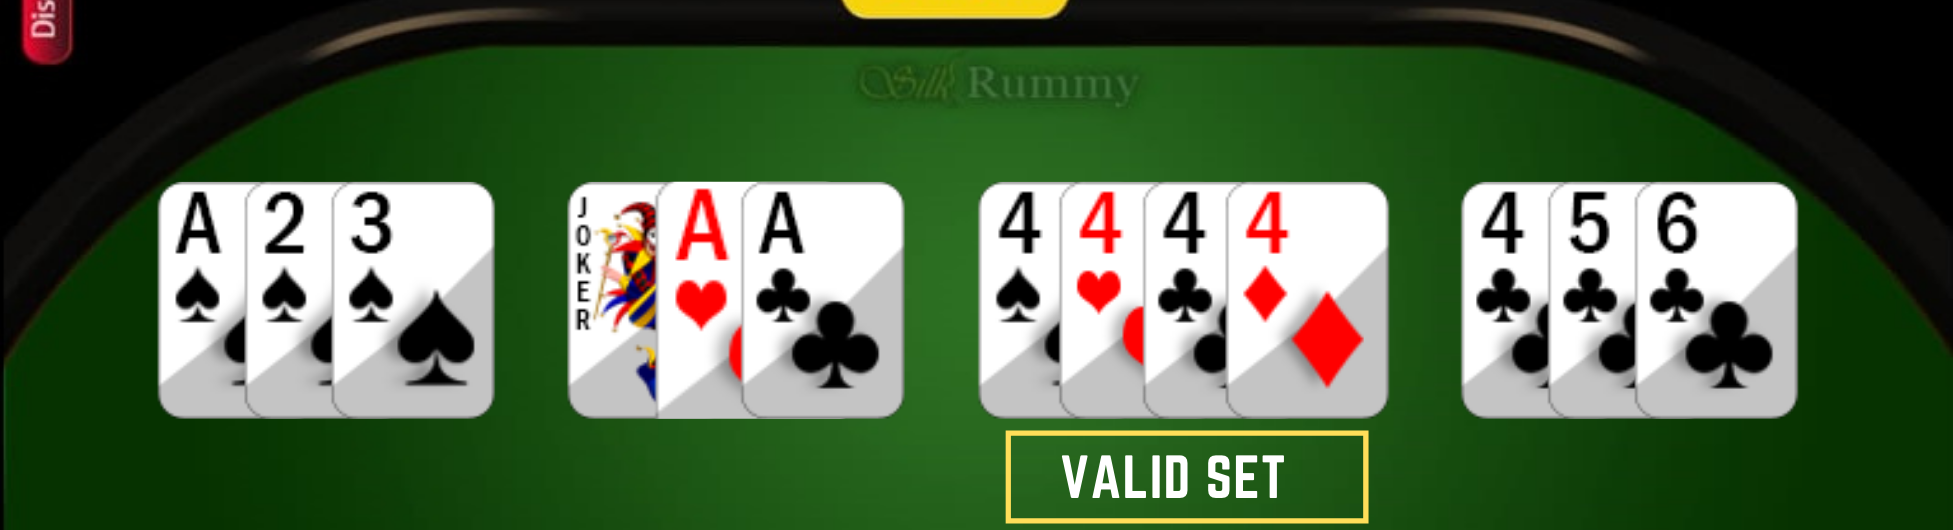 How to Play Rummy- Learn Rummy Rules- Rummy valid set with 4 cards